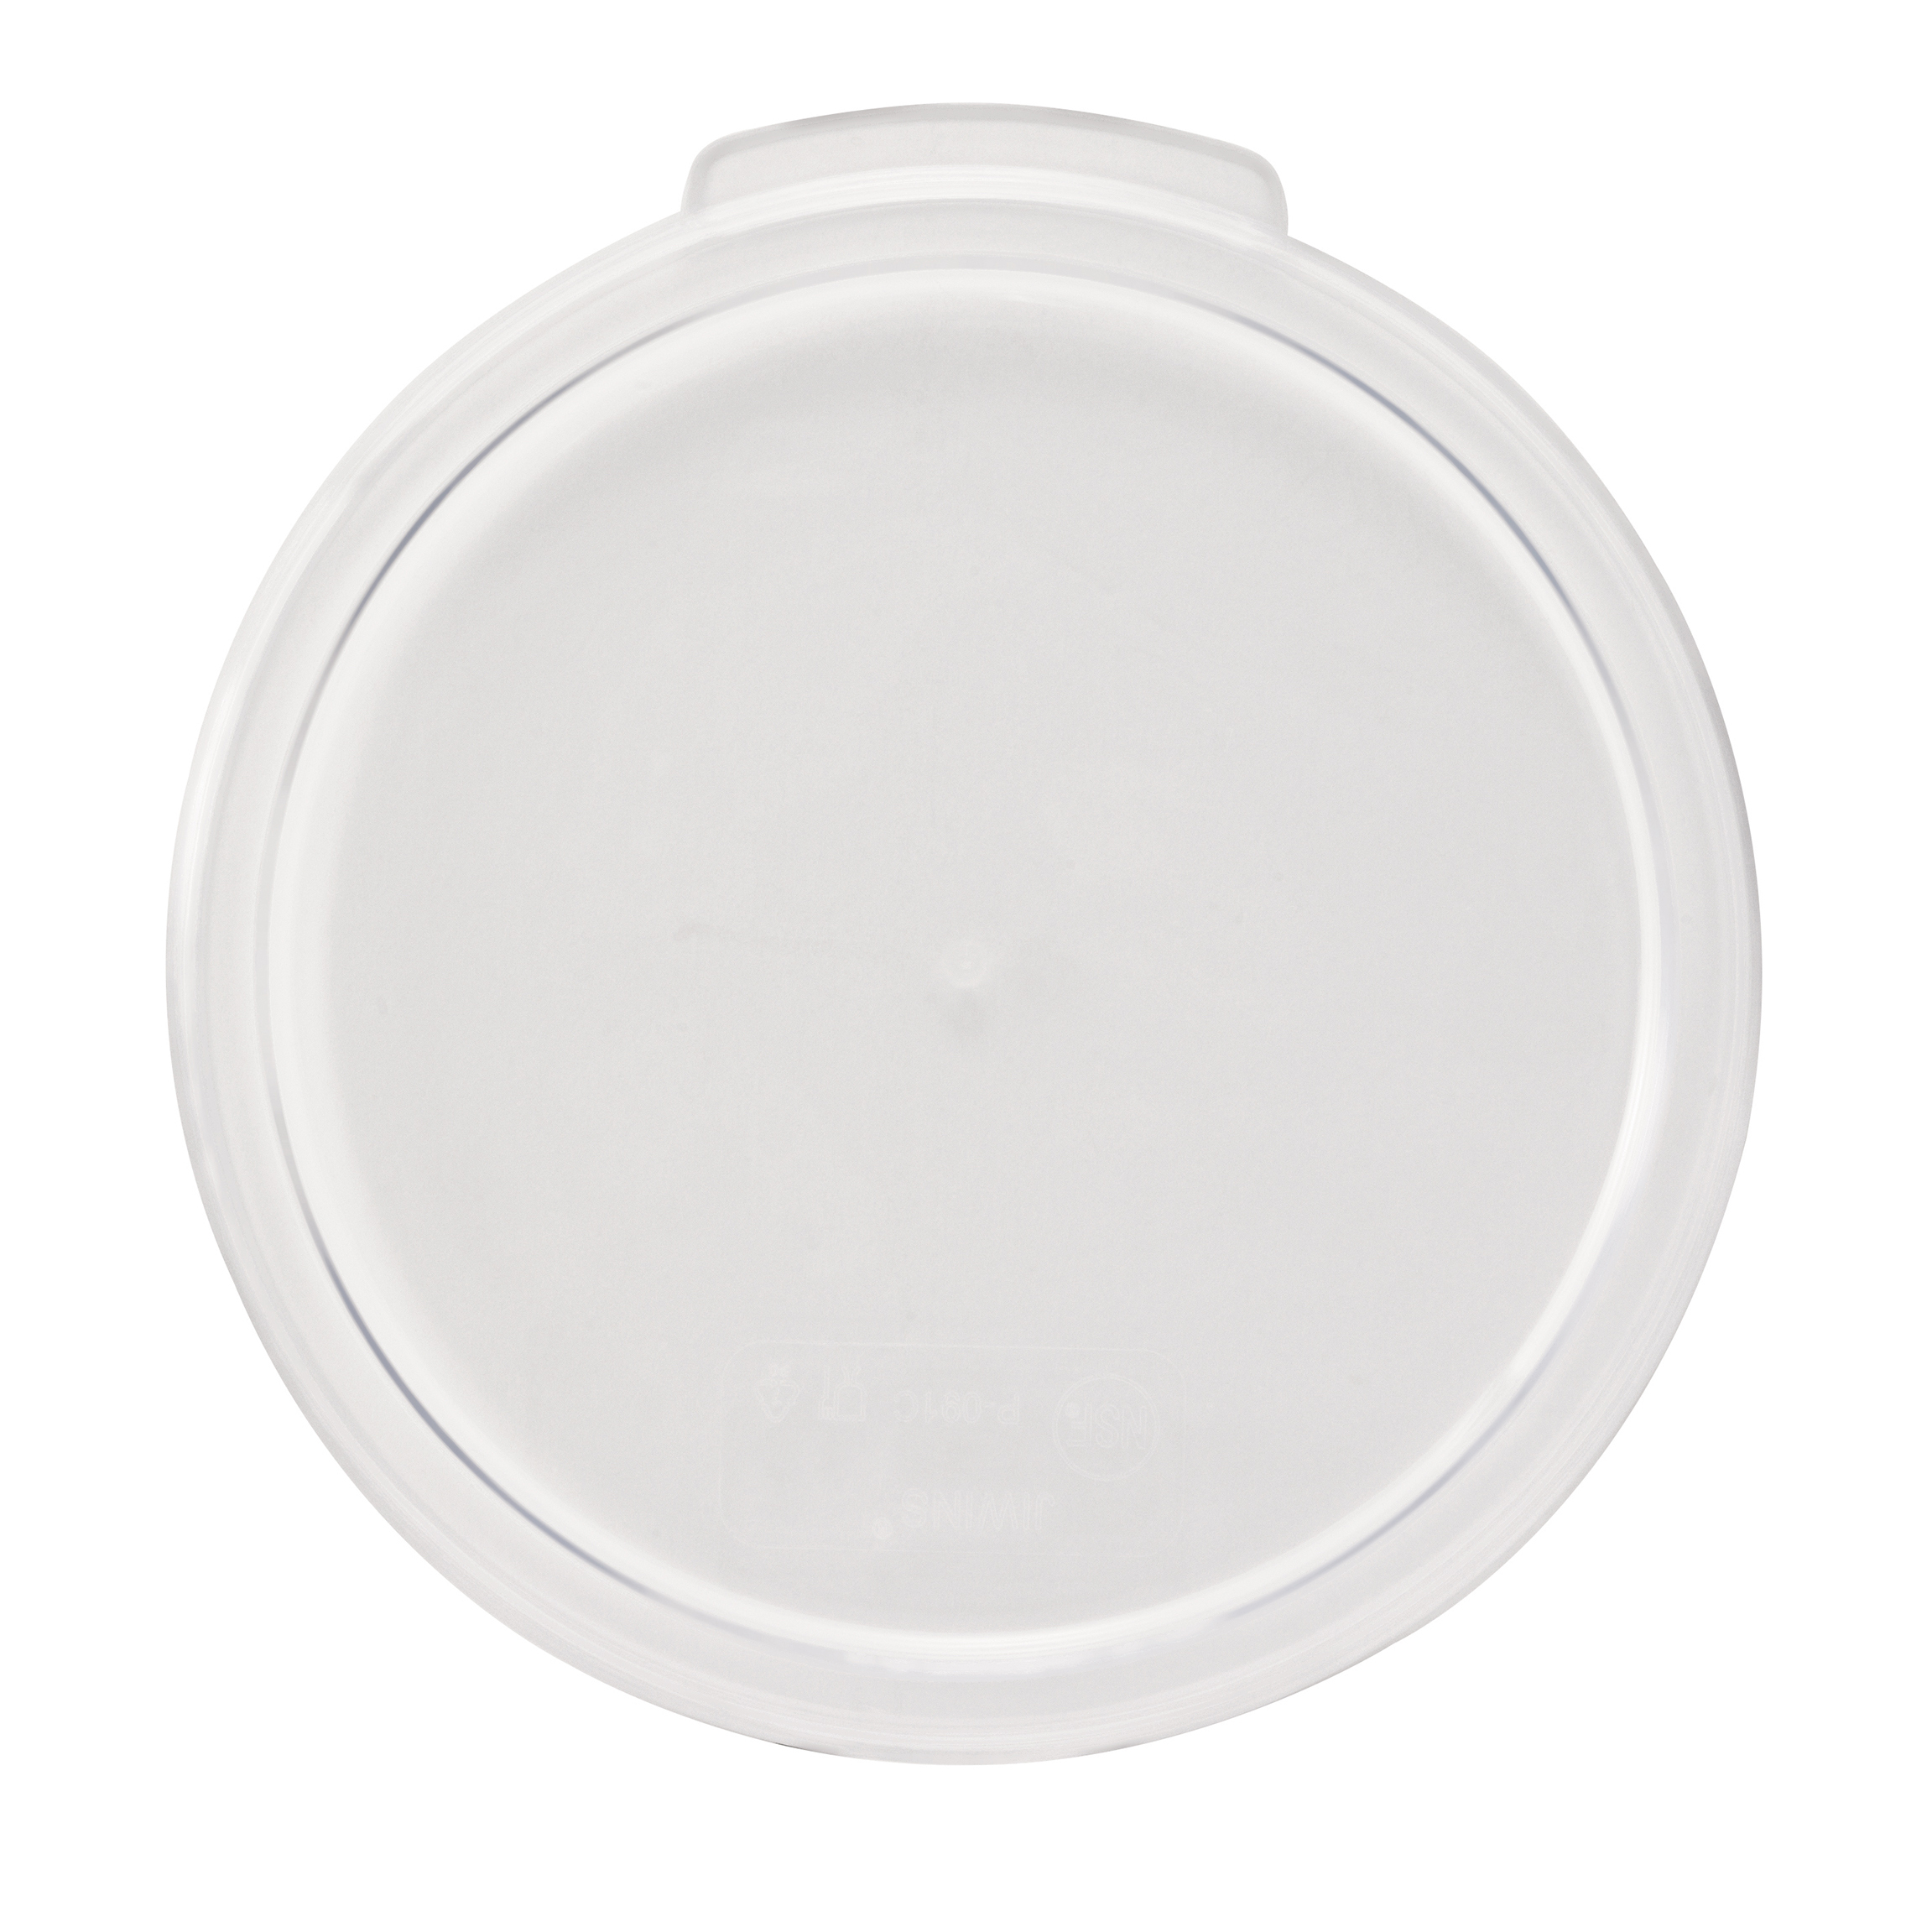 Winco PCRC-68C food storage container cover